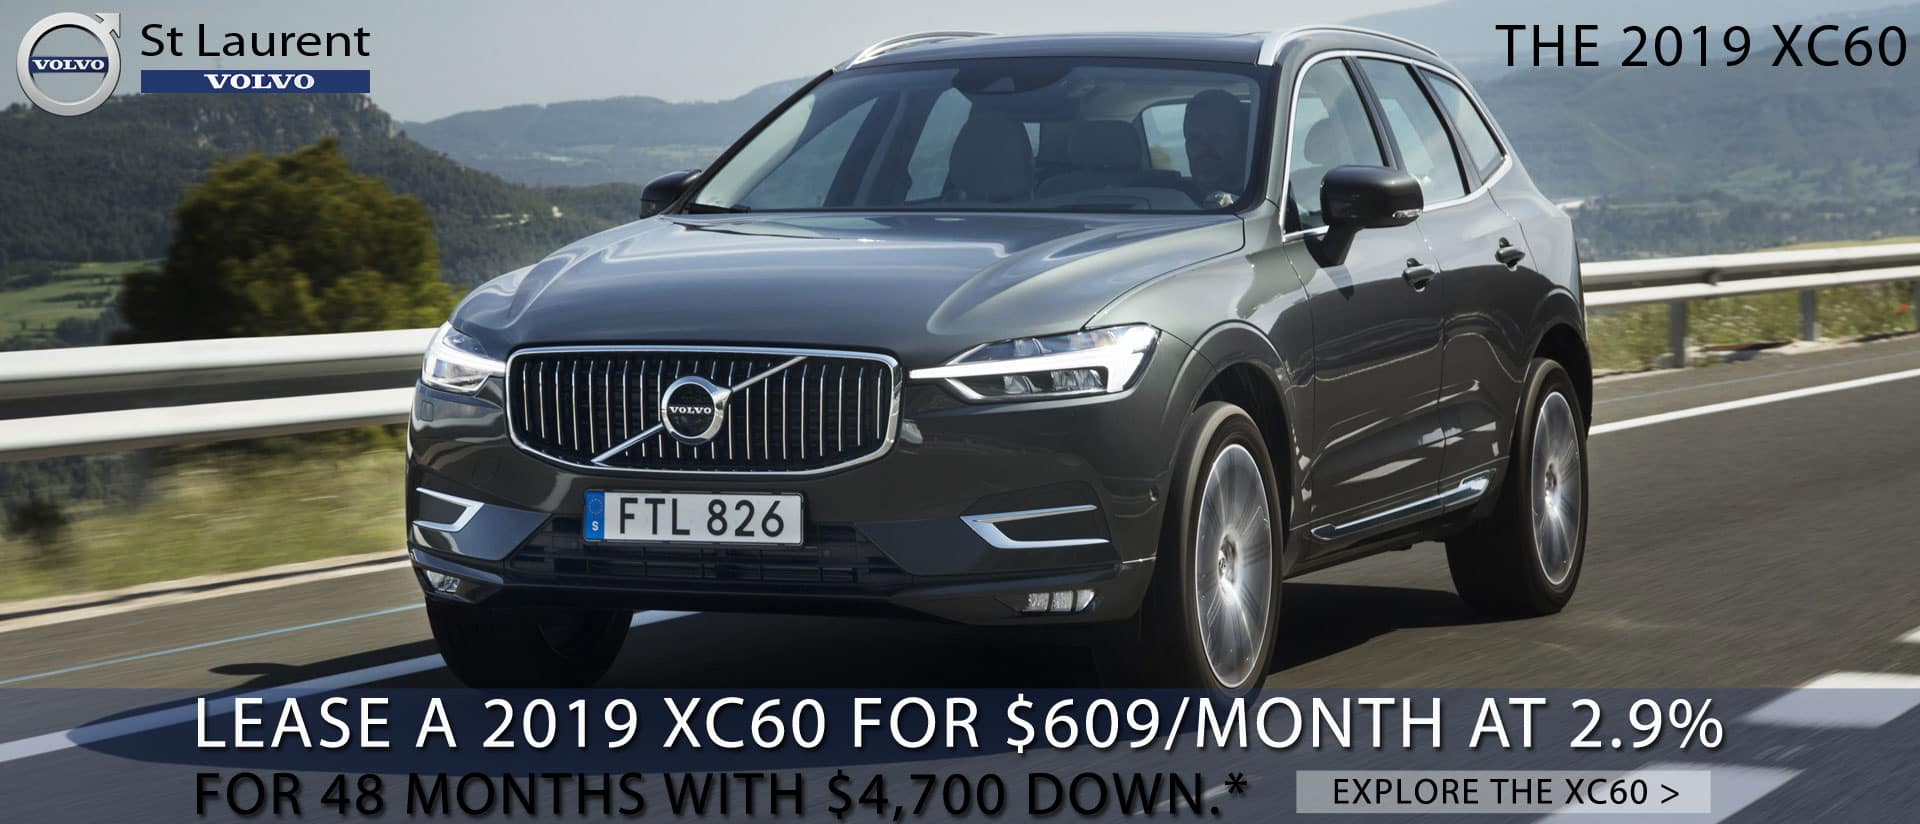 xc60-march-st-laurent